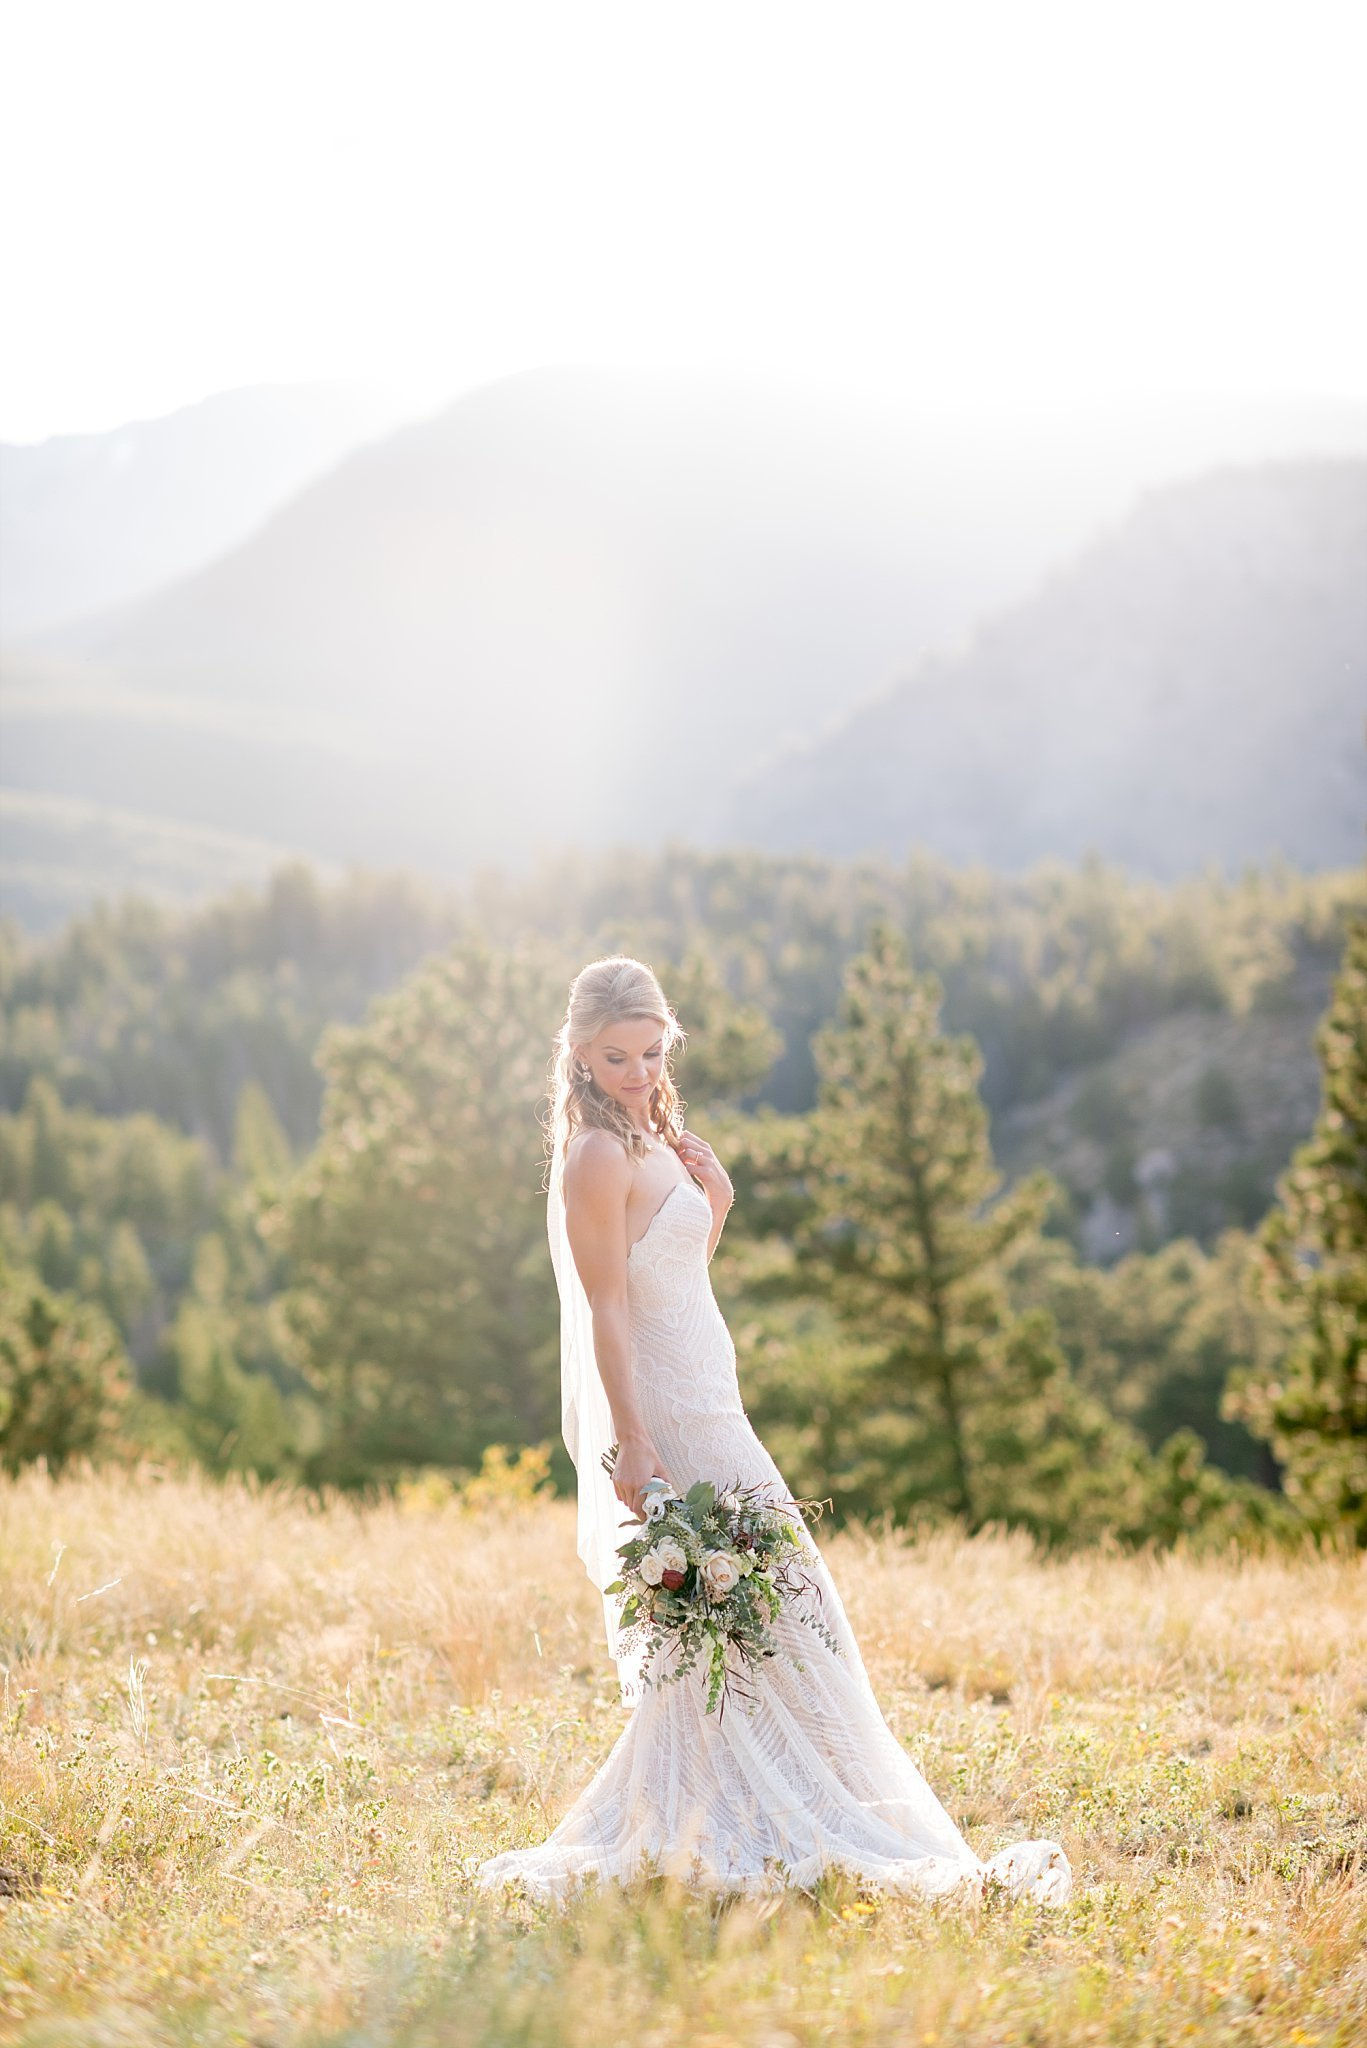 Elizabeth Ann Photography, Denver Wedding Photographer, Fine Art Wedding_2492